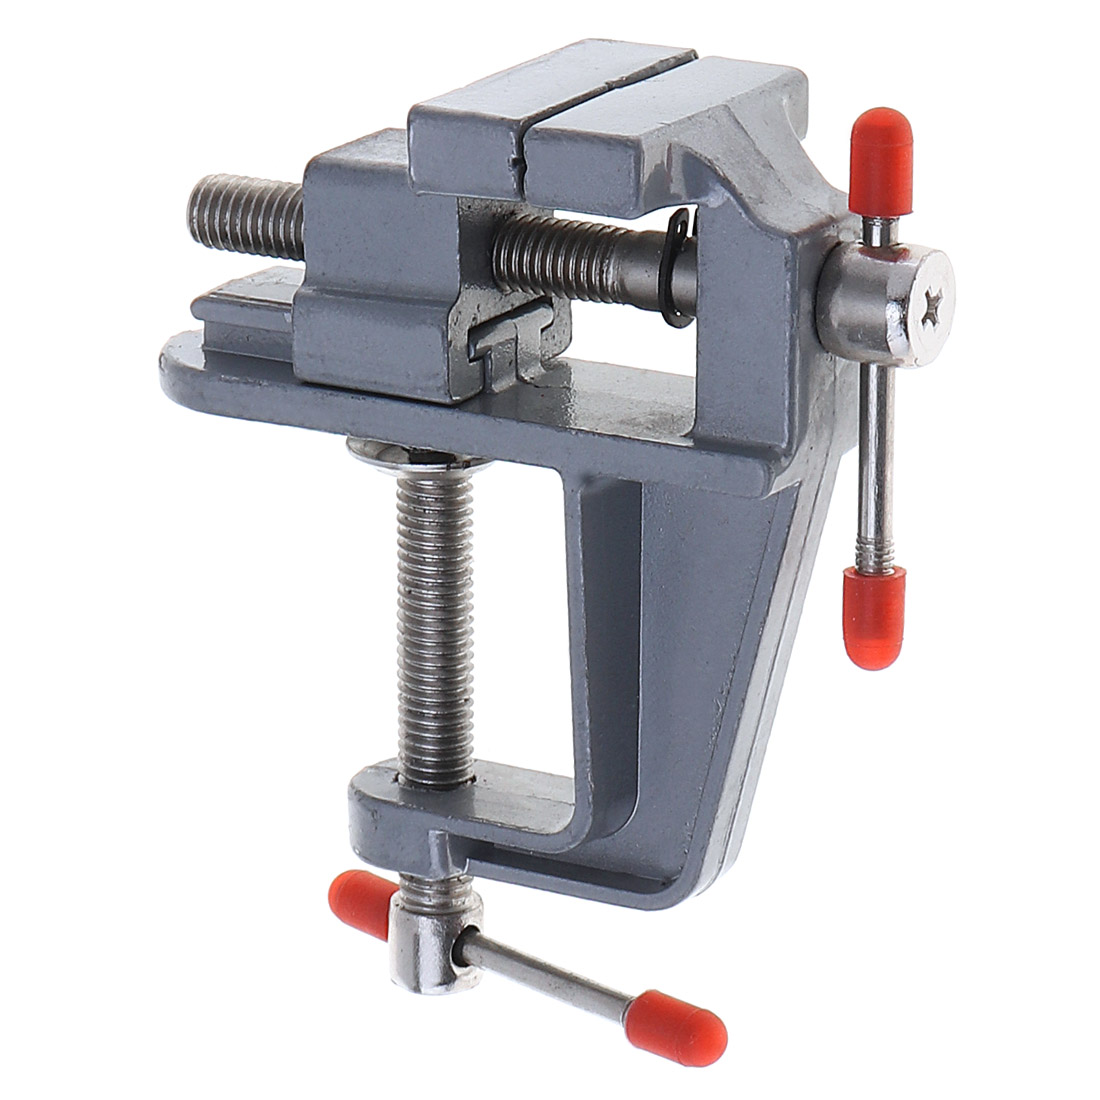 Mini Aluminum Alloy DIY Jaw Bench Clamp Drill Press Vice Micro Clip for Clamping Table / Water Pump Brackets & Clamps(China)